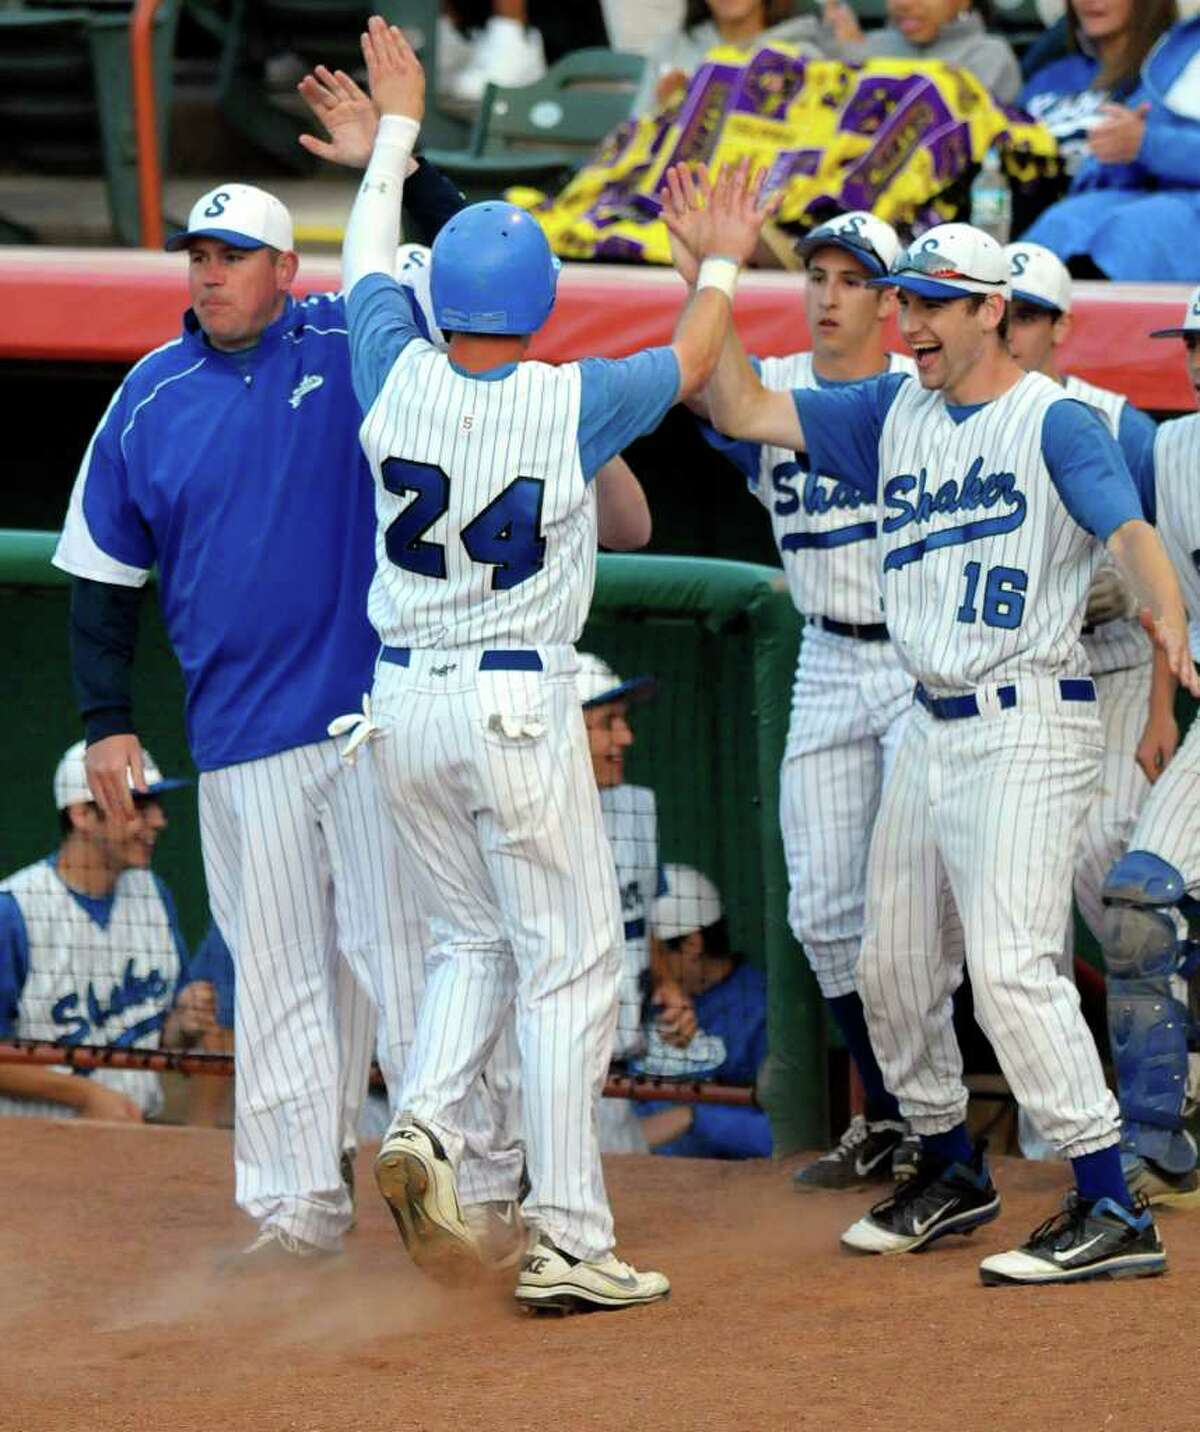 Shaker's Drew Lasky (24) celebrates a scoring run with teammates against Colonie during a Class AA baseball final between final in Troy, N.Y., Thursday, June 2, 2011. (Hans Pennink / Special to the Times Union) High School Sports